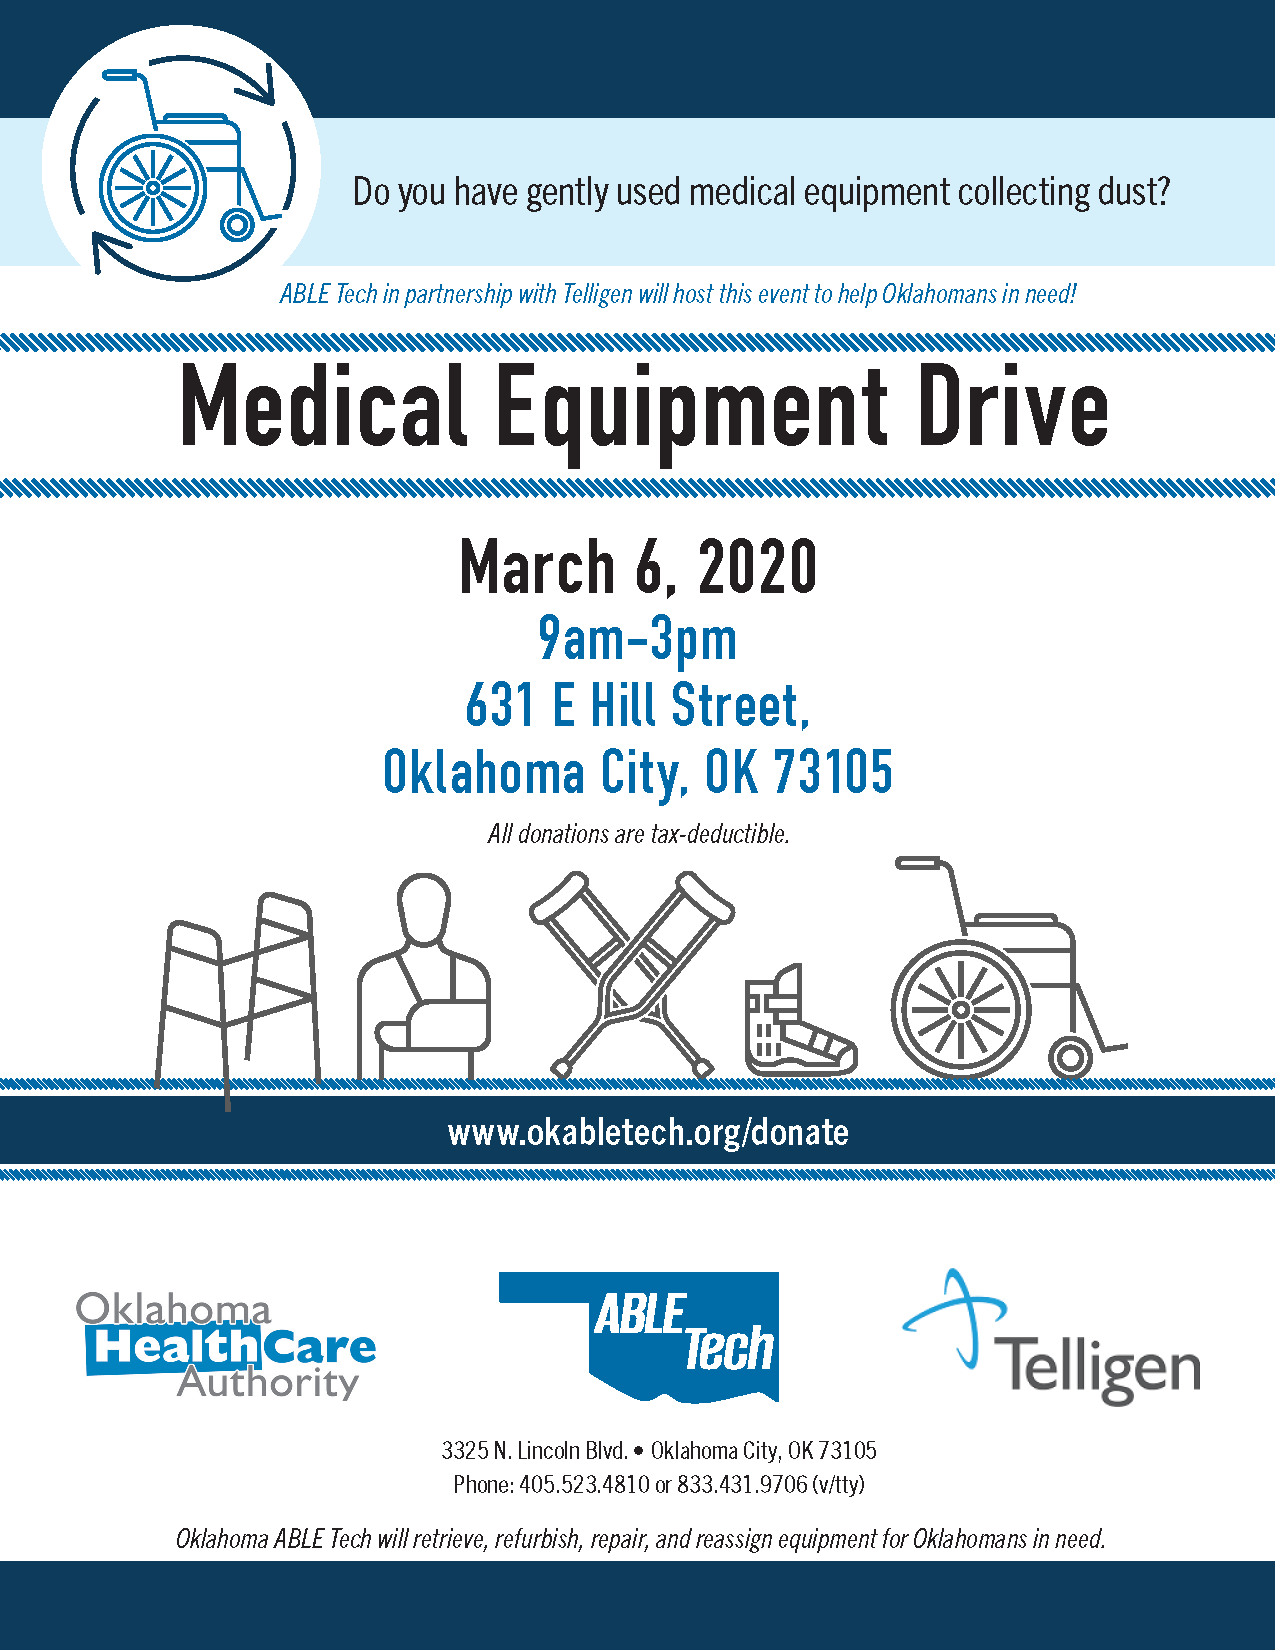 ABLE Tech - Medical Equipment Drive in OKC @ Credit Union House of Oklahoma